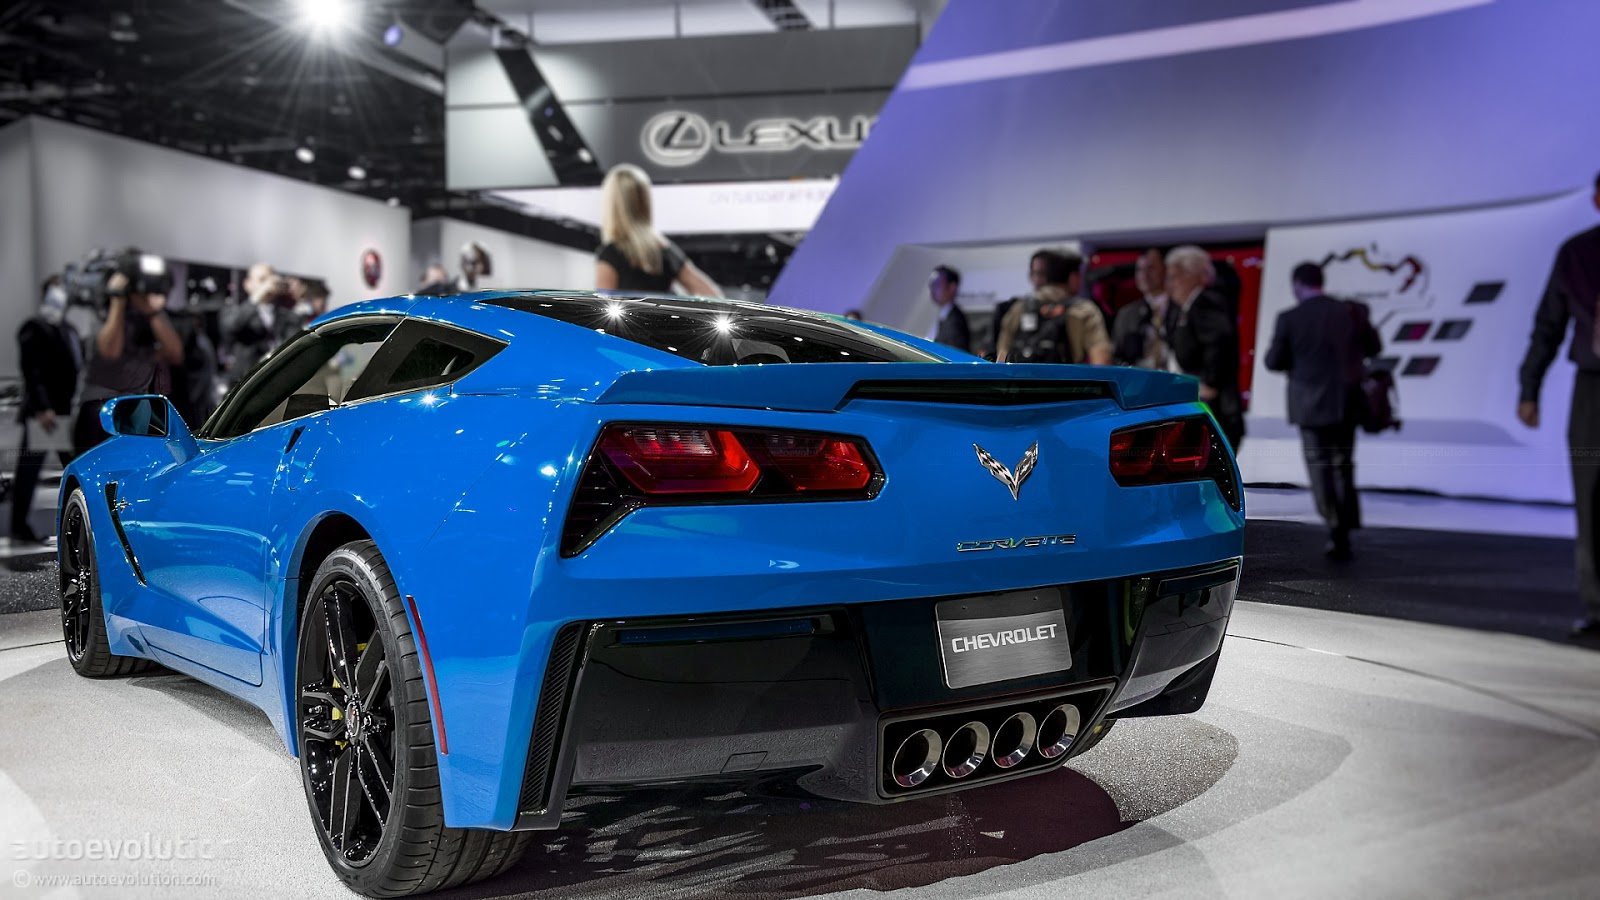 2014 Corvette Blue Cars